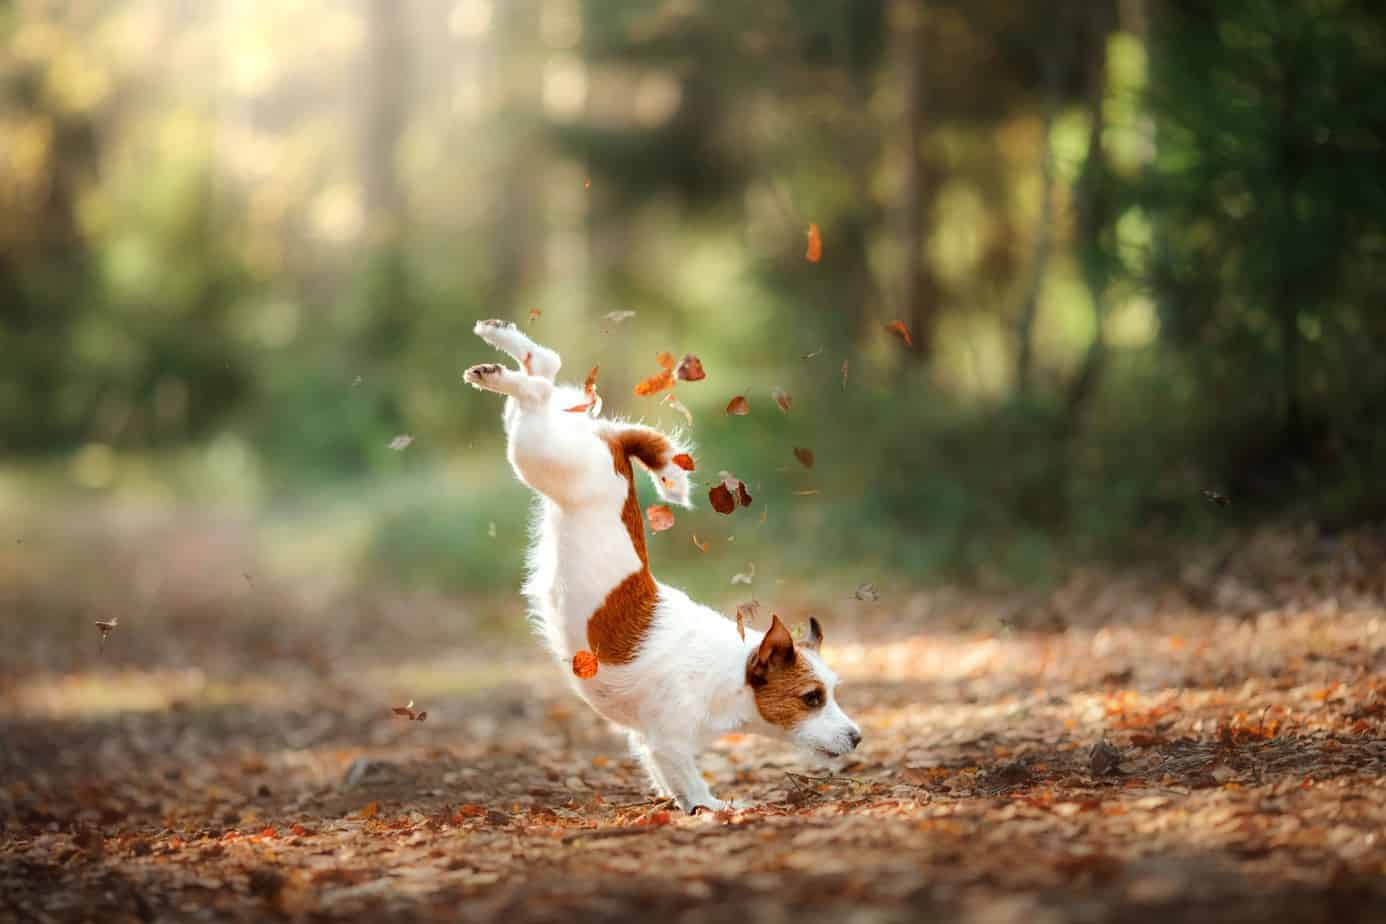 Jack Russell terrier plays in leaves